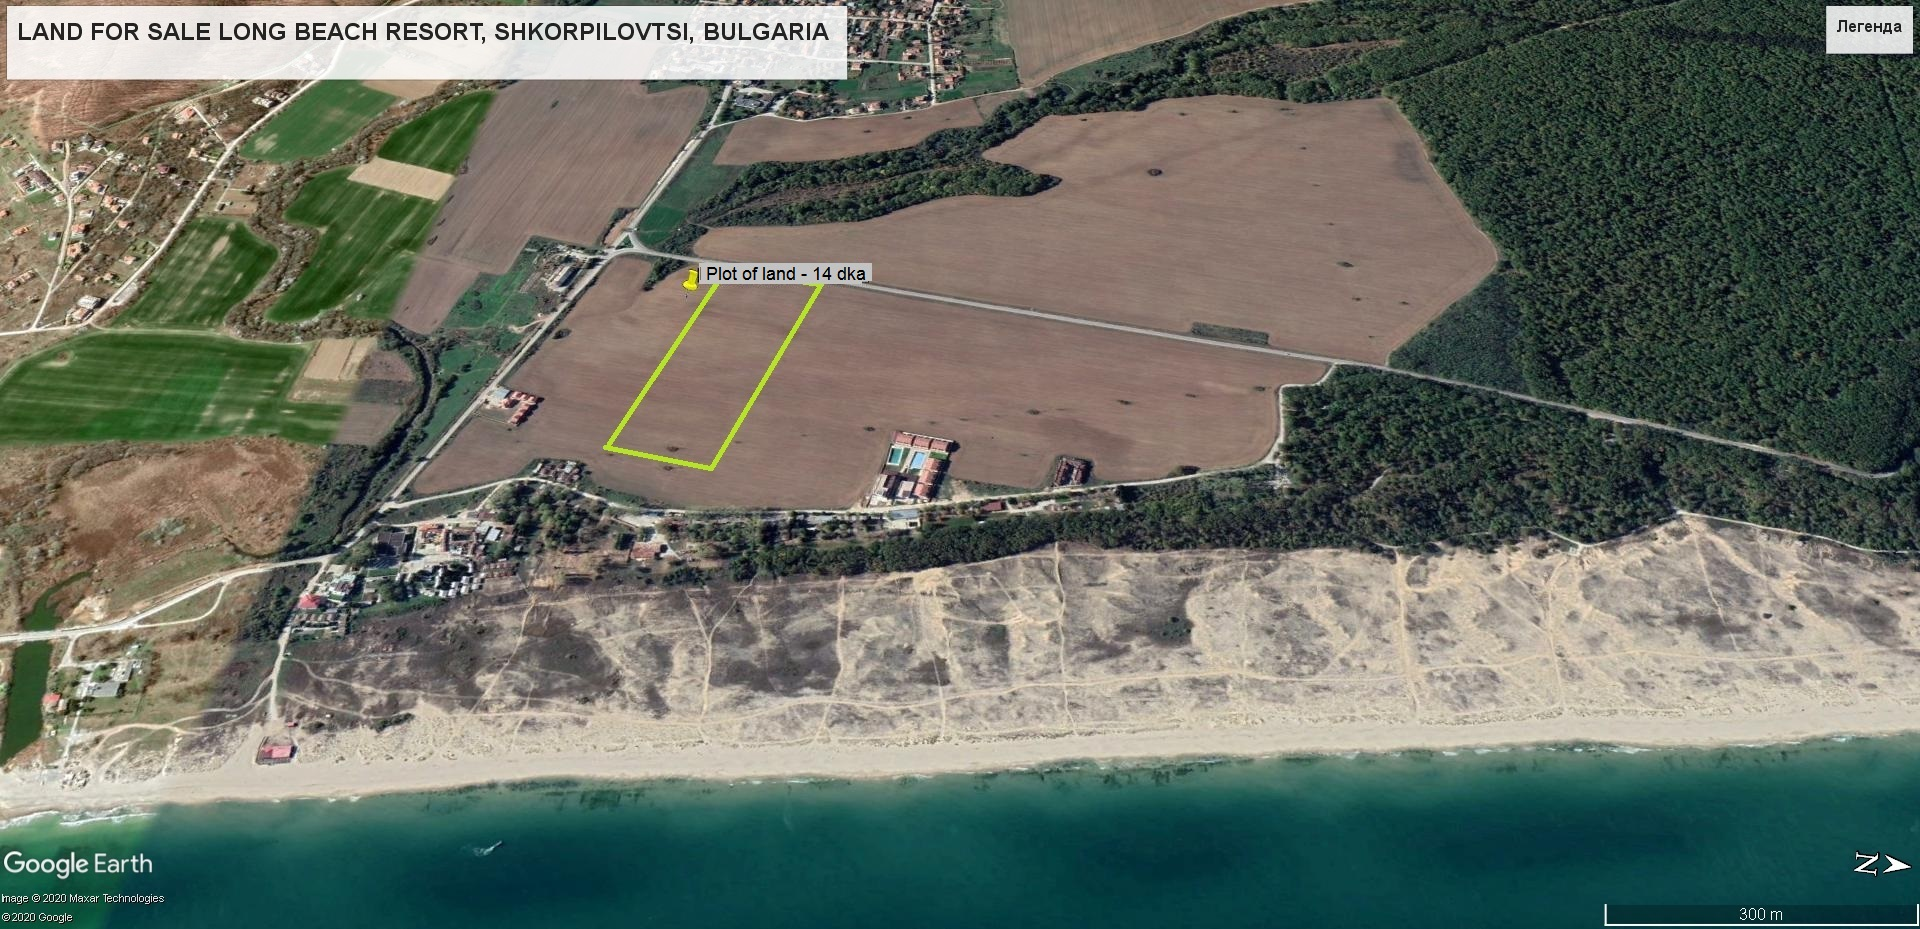 Building land near the beach - Shkorpilovtsi, Long Beach sea resort, Varna, Bulgaria